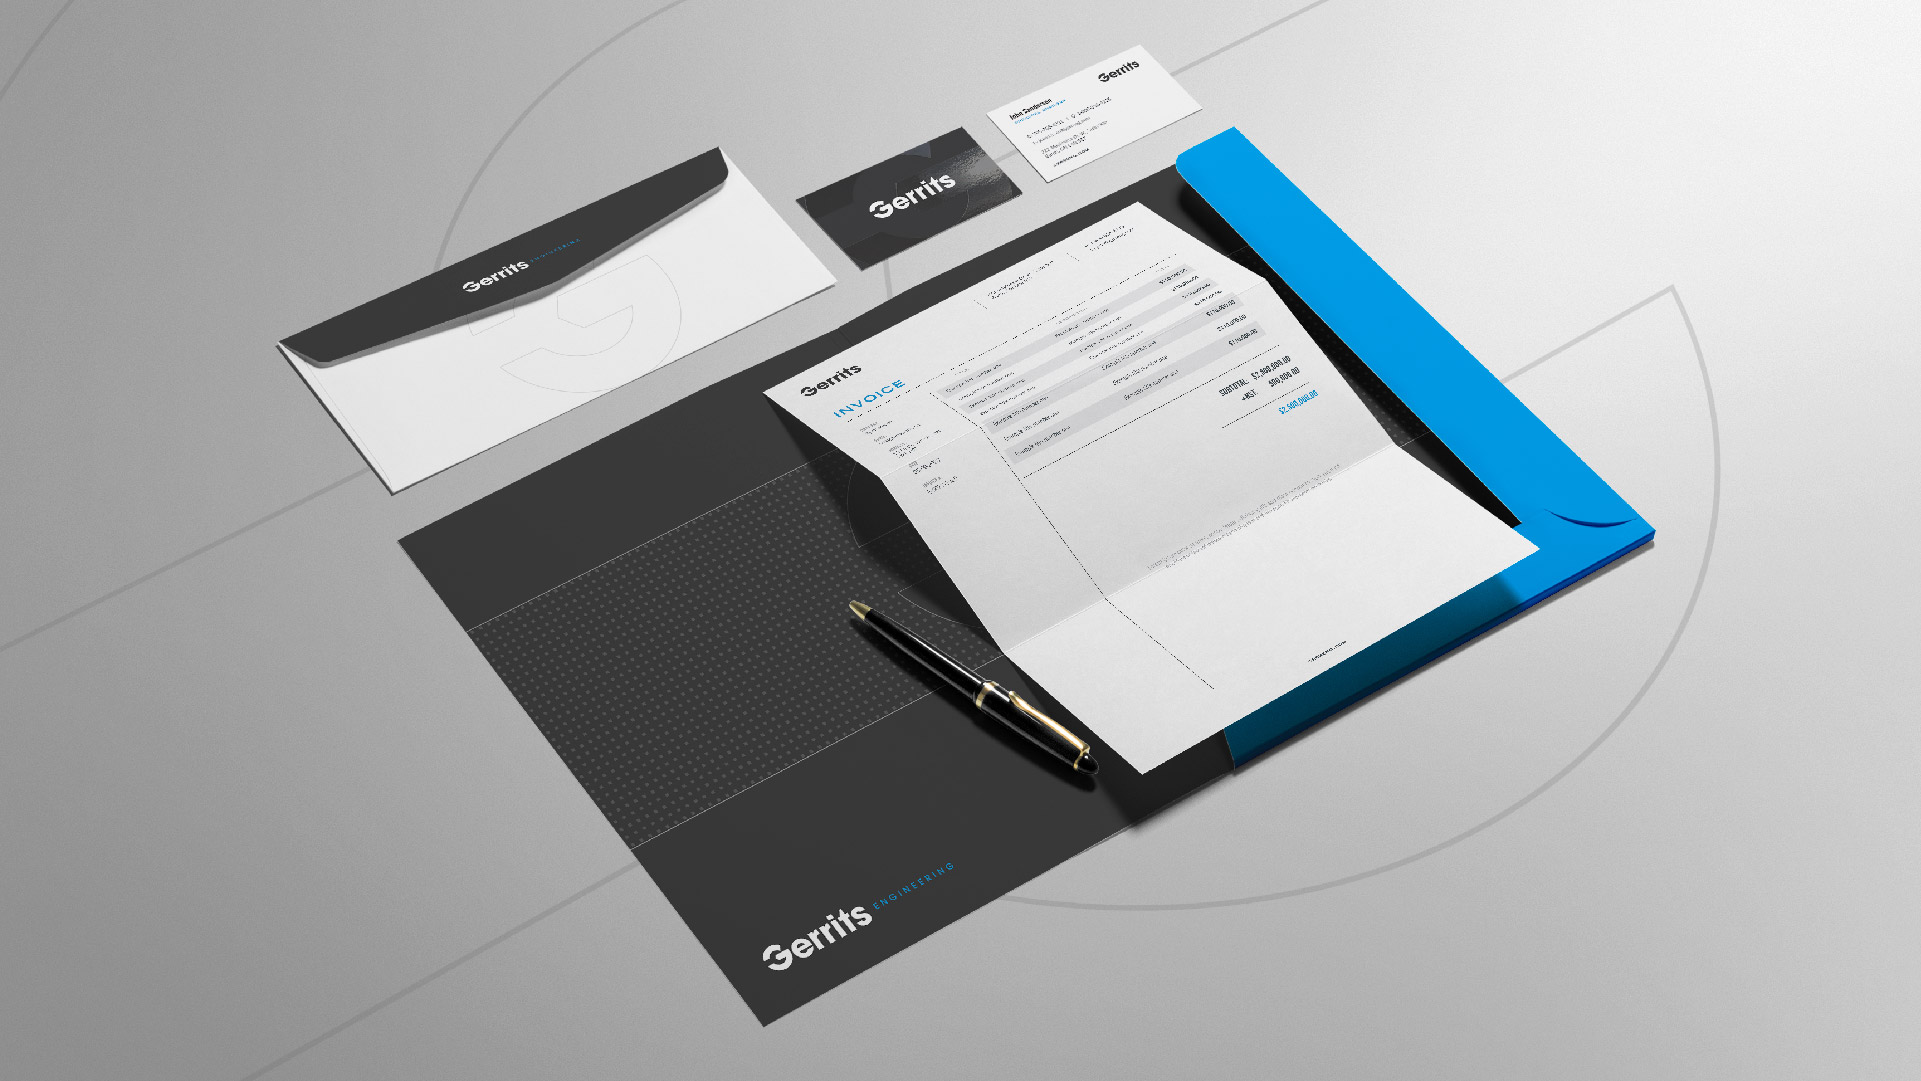 gerrits engineering invoice envelope and business card designs